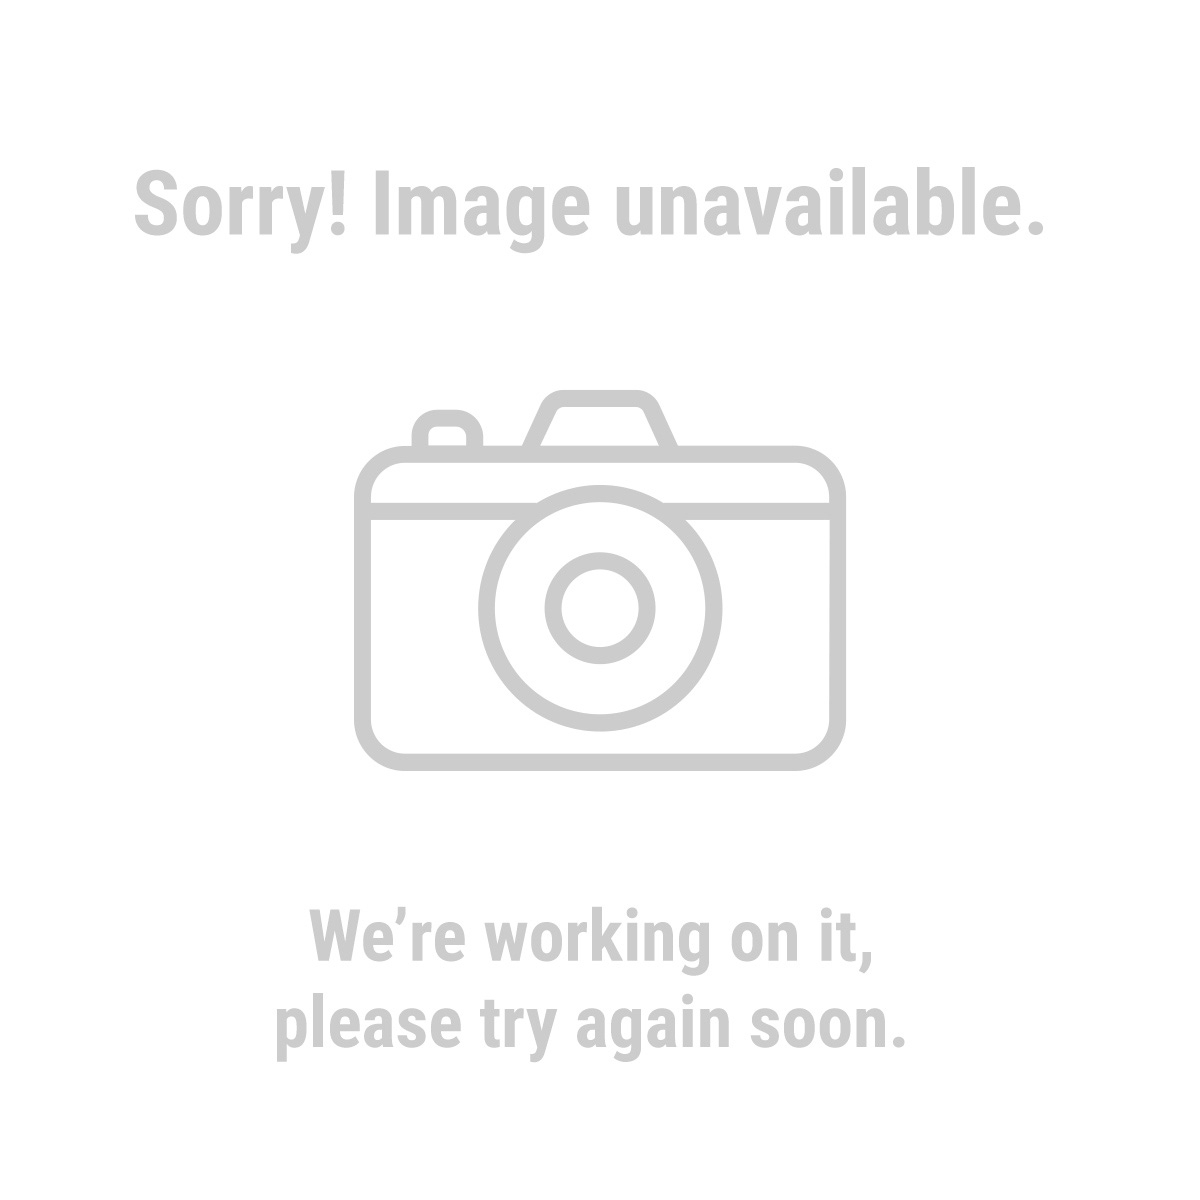 Chicago Electric Power Tools 61970 12 in. Double-Bevel Sliding Compound Miter Saw With Laser Guide System